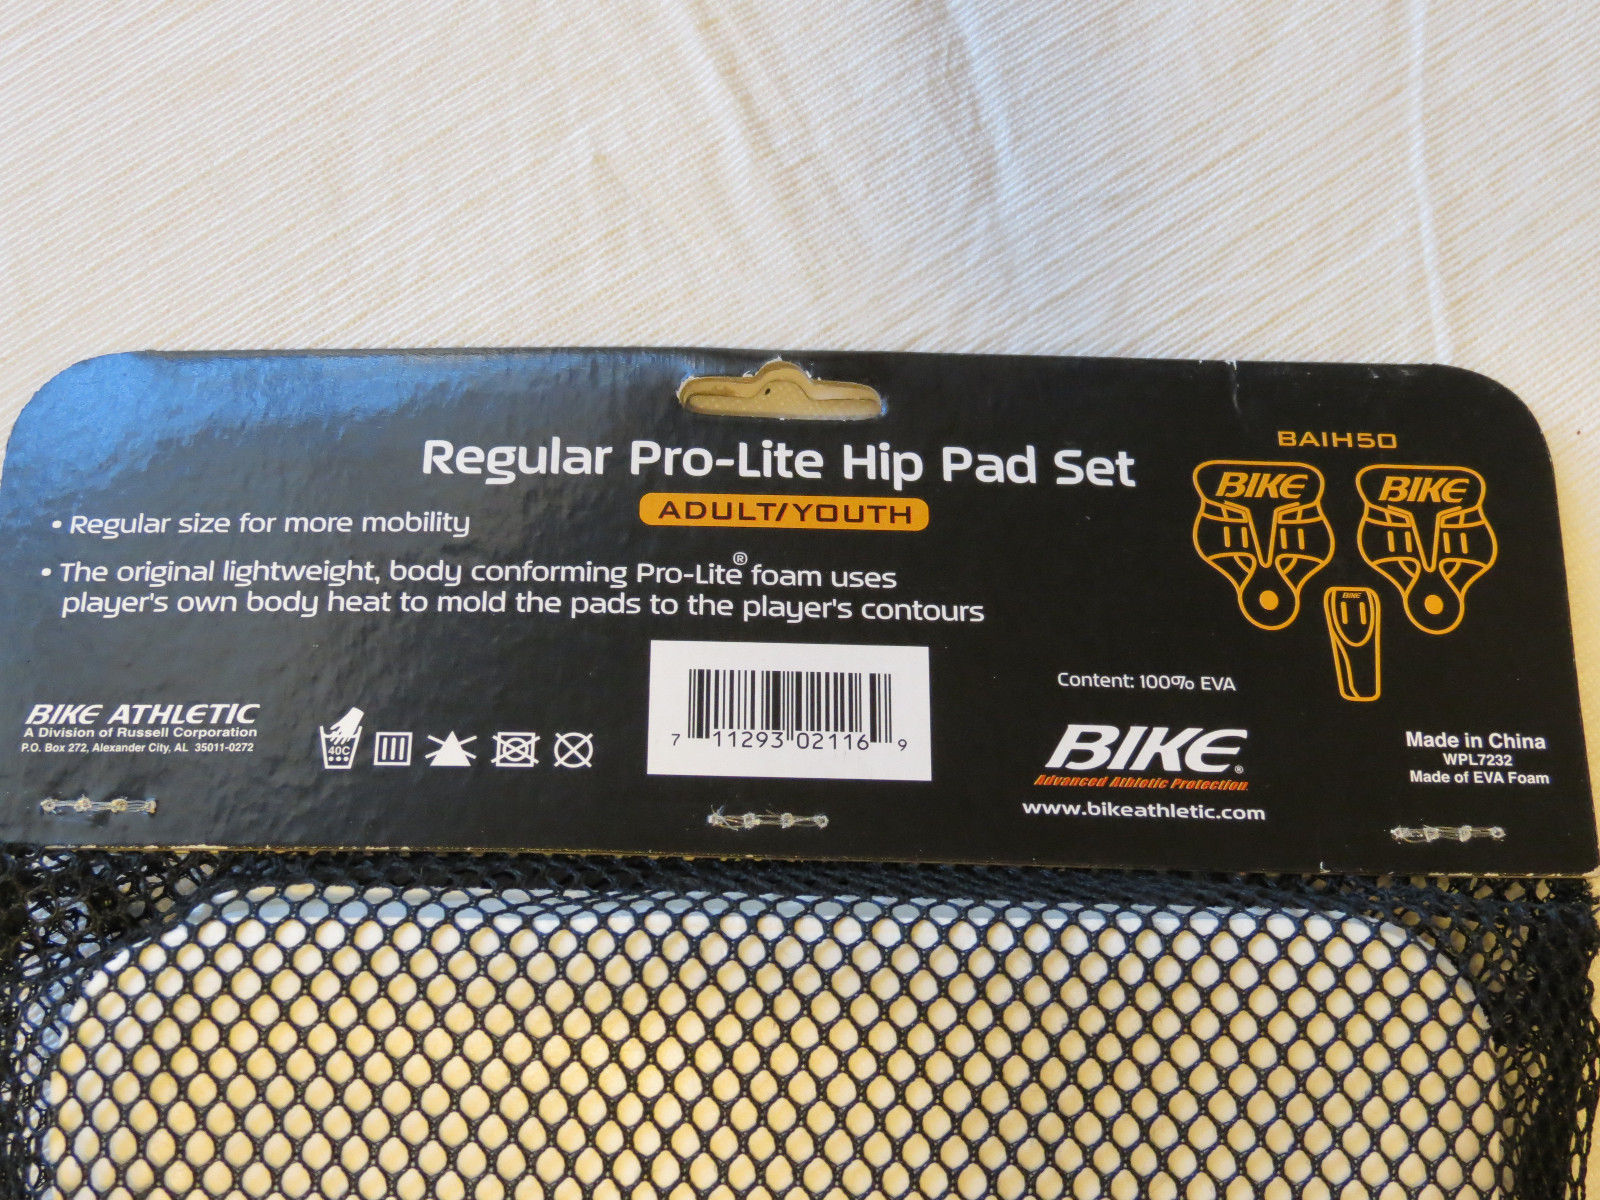 BIKE Adult Large Pro-Lite Thigh Pad Set White BAIT30 white protective gear NEW